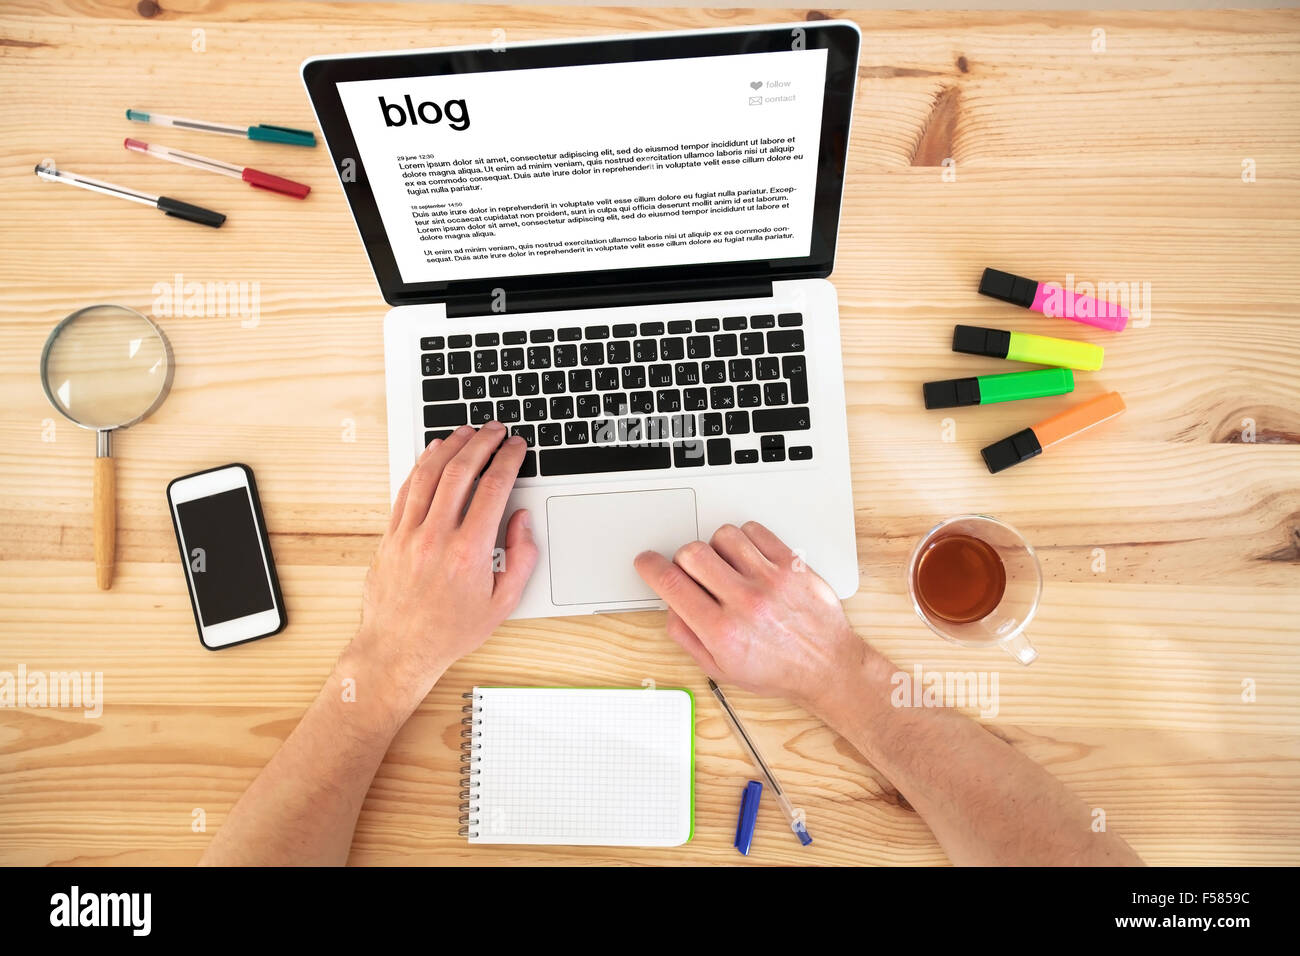 blog, top view of hands and keyboard - Stock Image